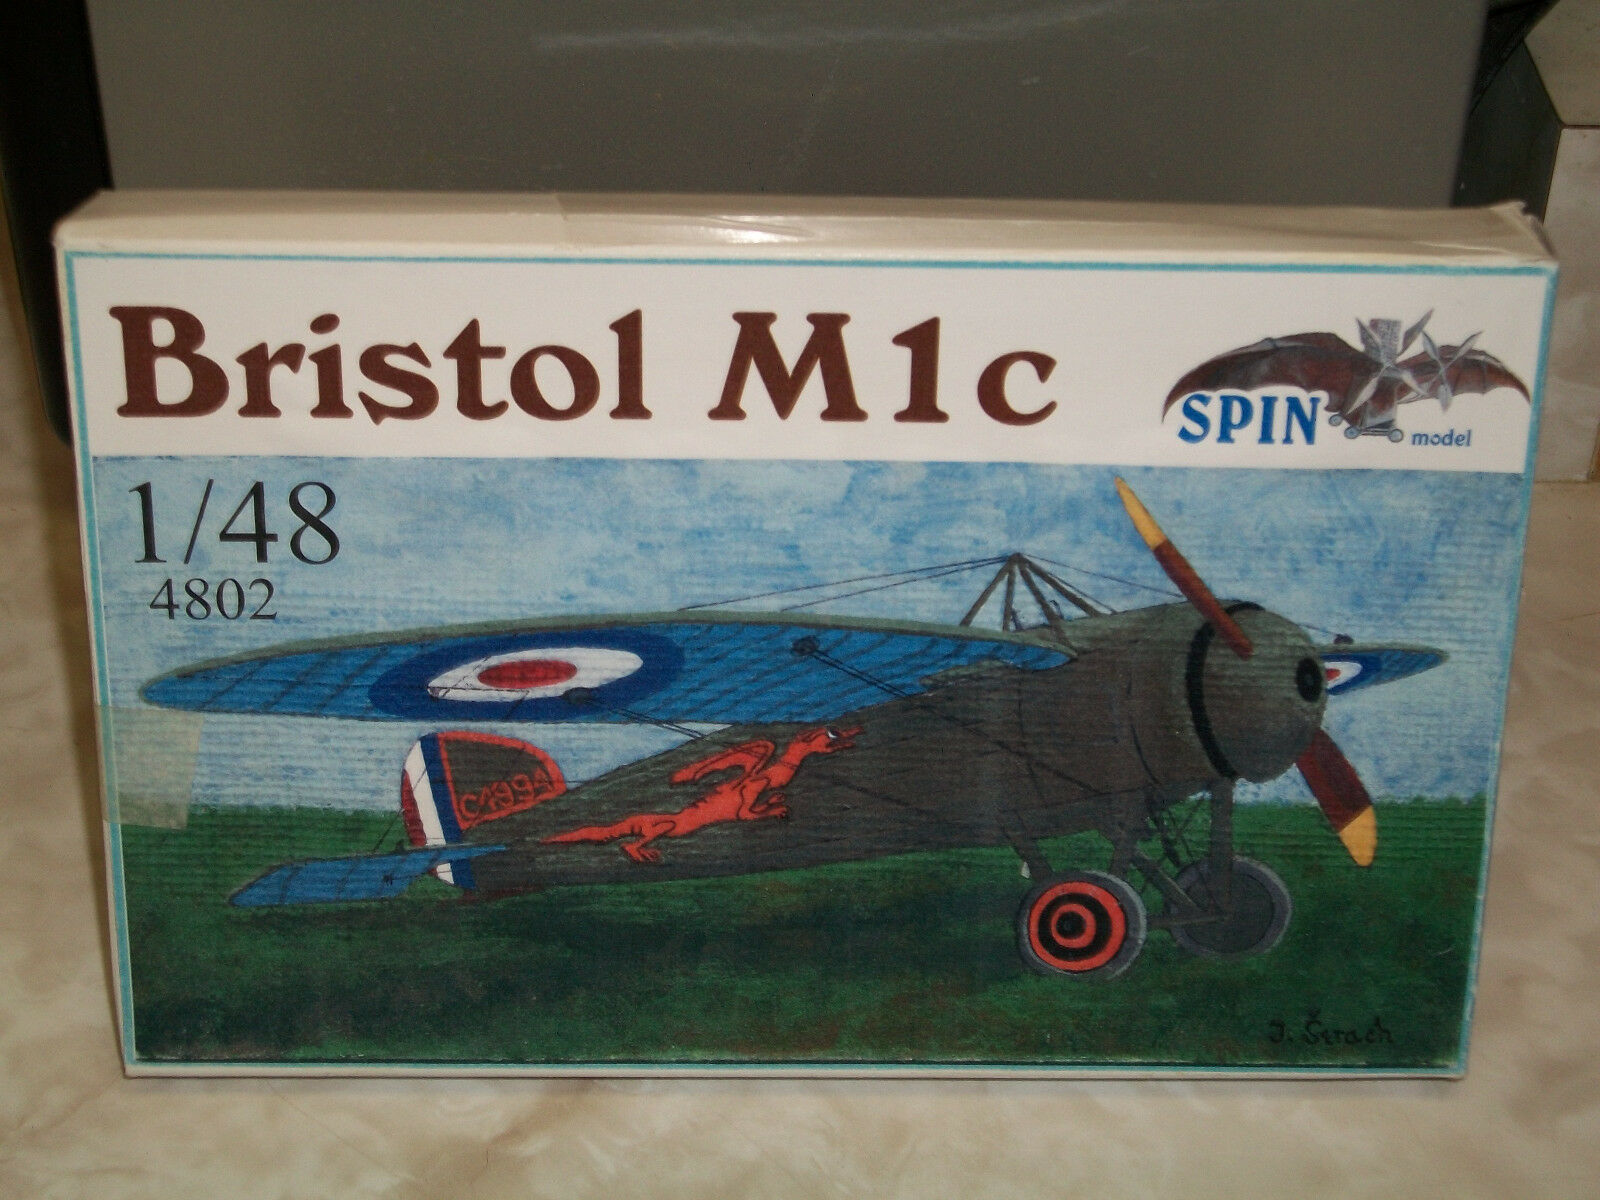 Spin 1 48 Scale Resin Bristol M1c